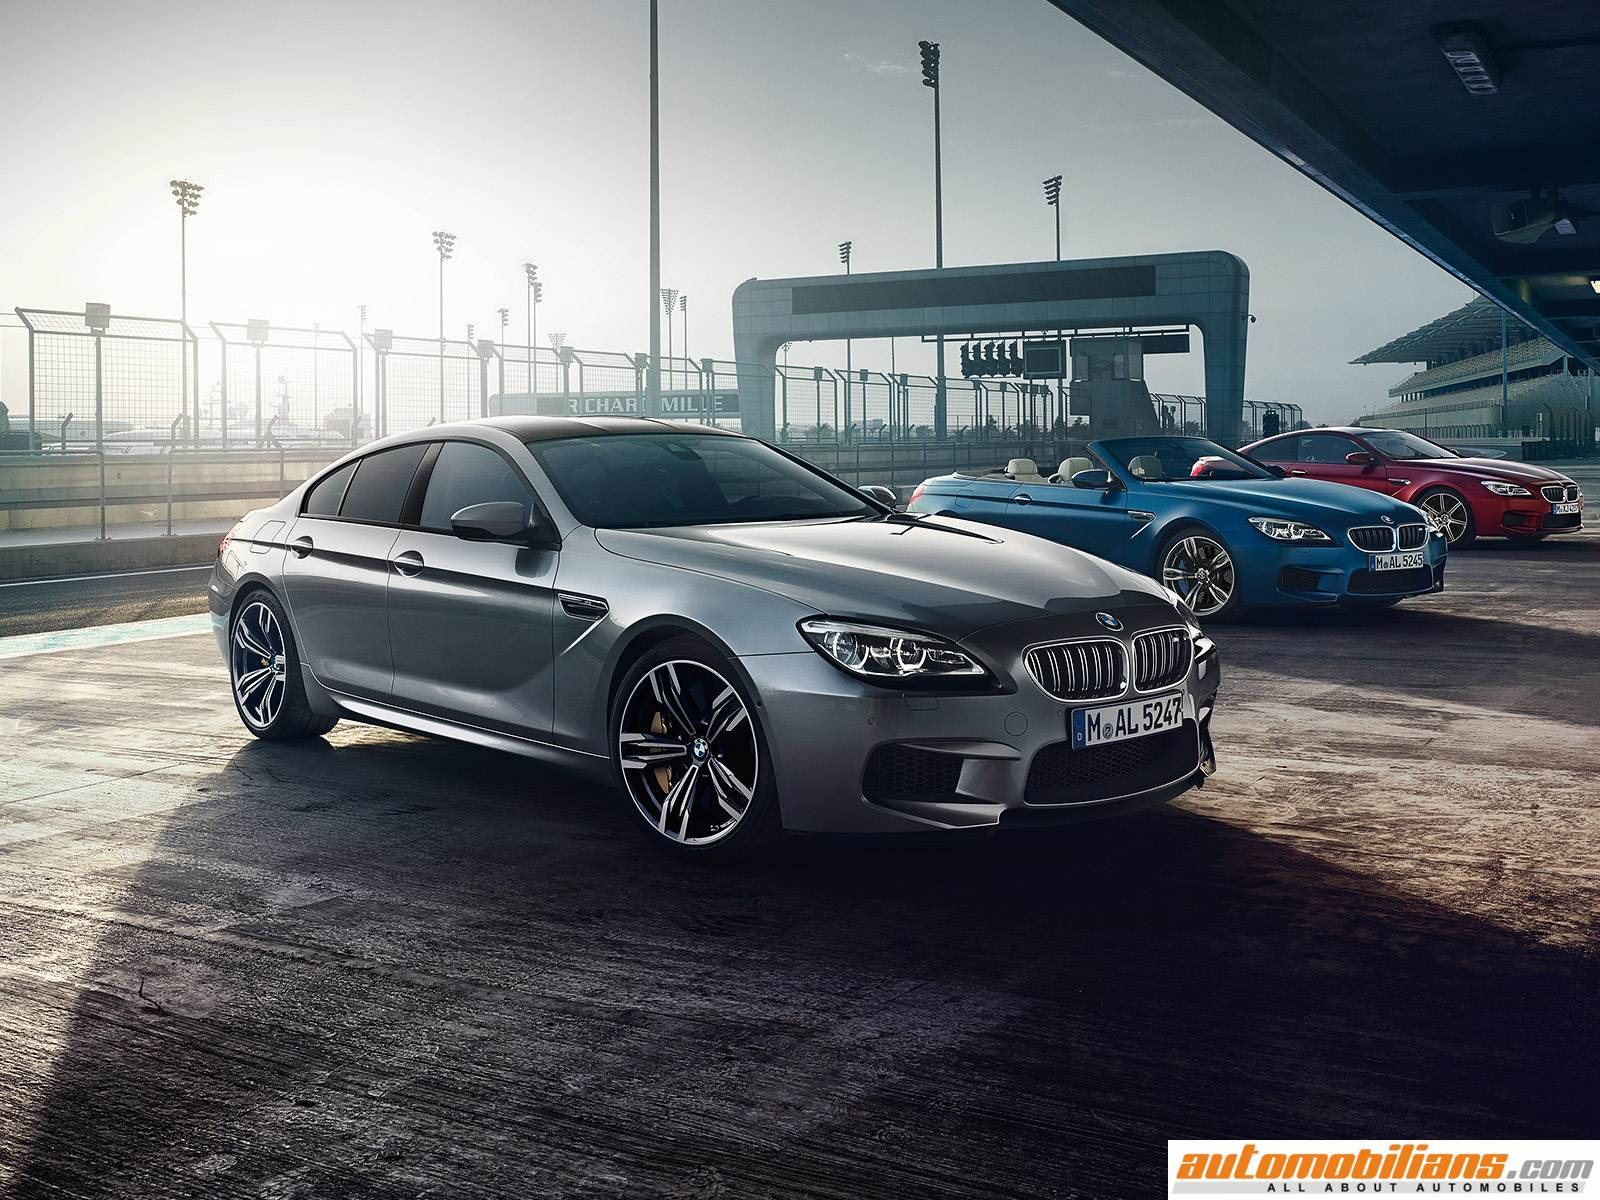 Bmw Dealerships Studio City >> BMW M6 Gran Coupé Launched In India At Rs. 1.71 Crores (Ex-Showroom, India) | BMW M Studio ...